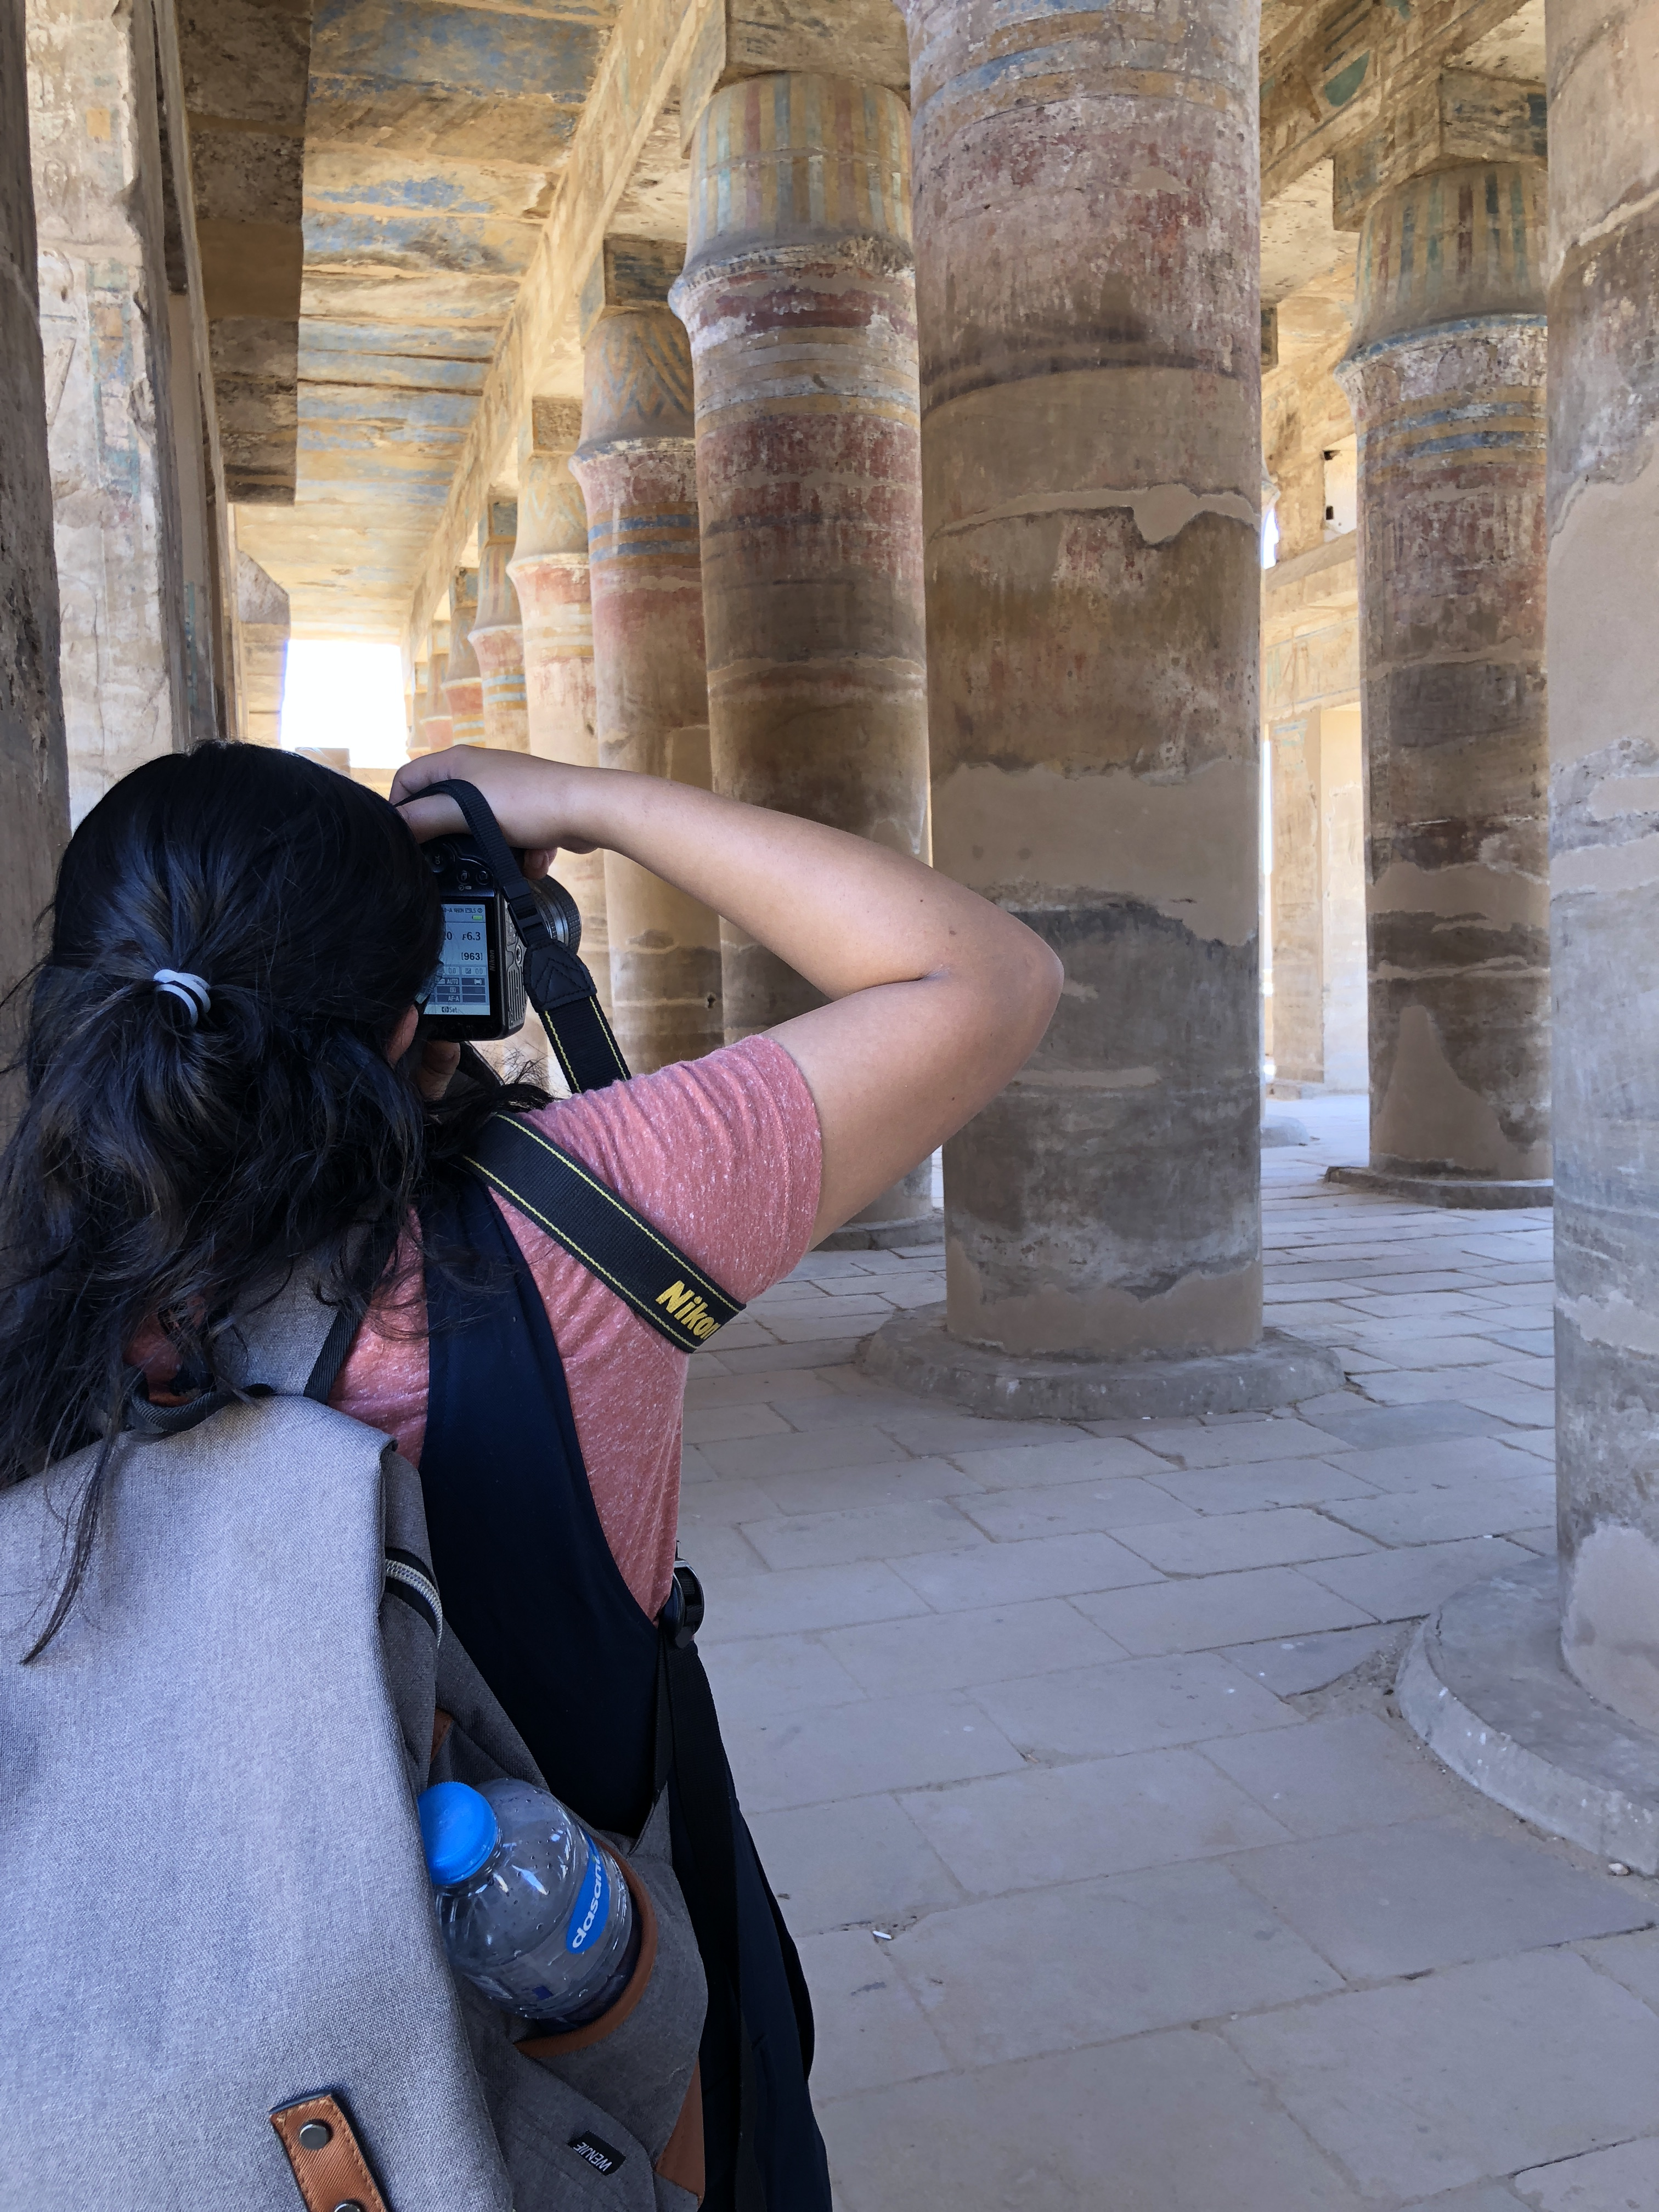 Me Taking Photos, Karnak Temple, Luxor, Egypt